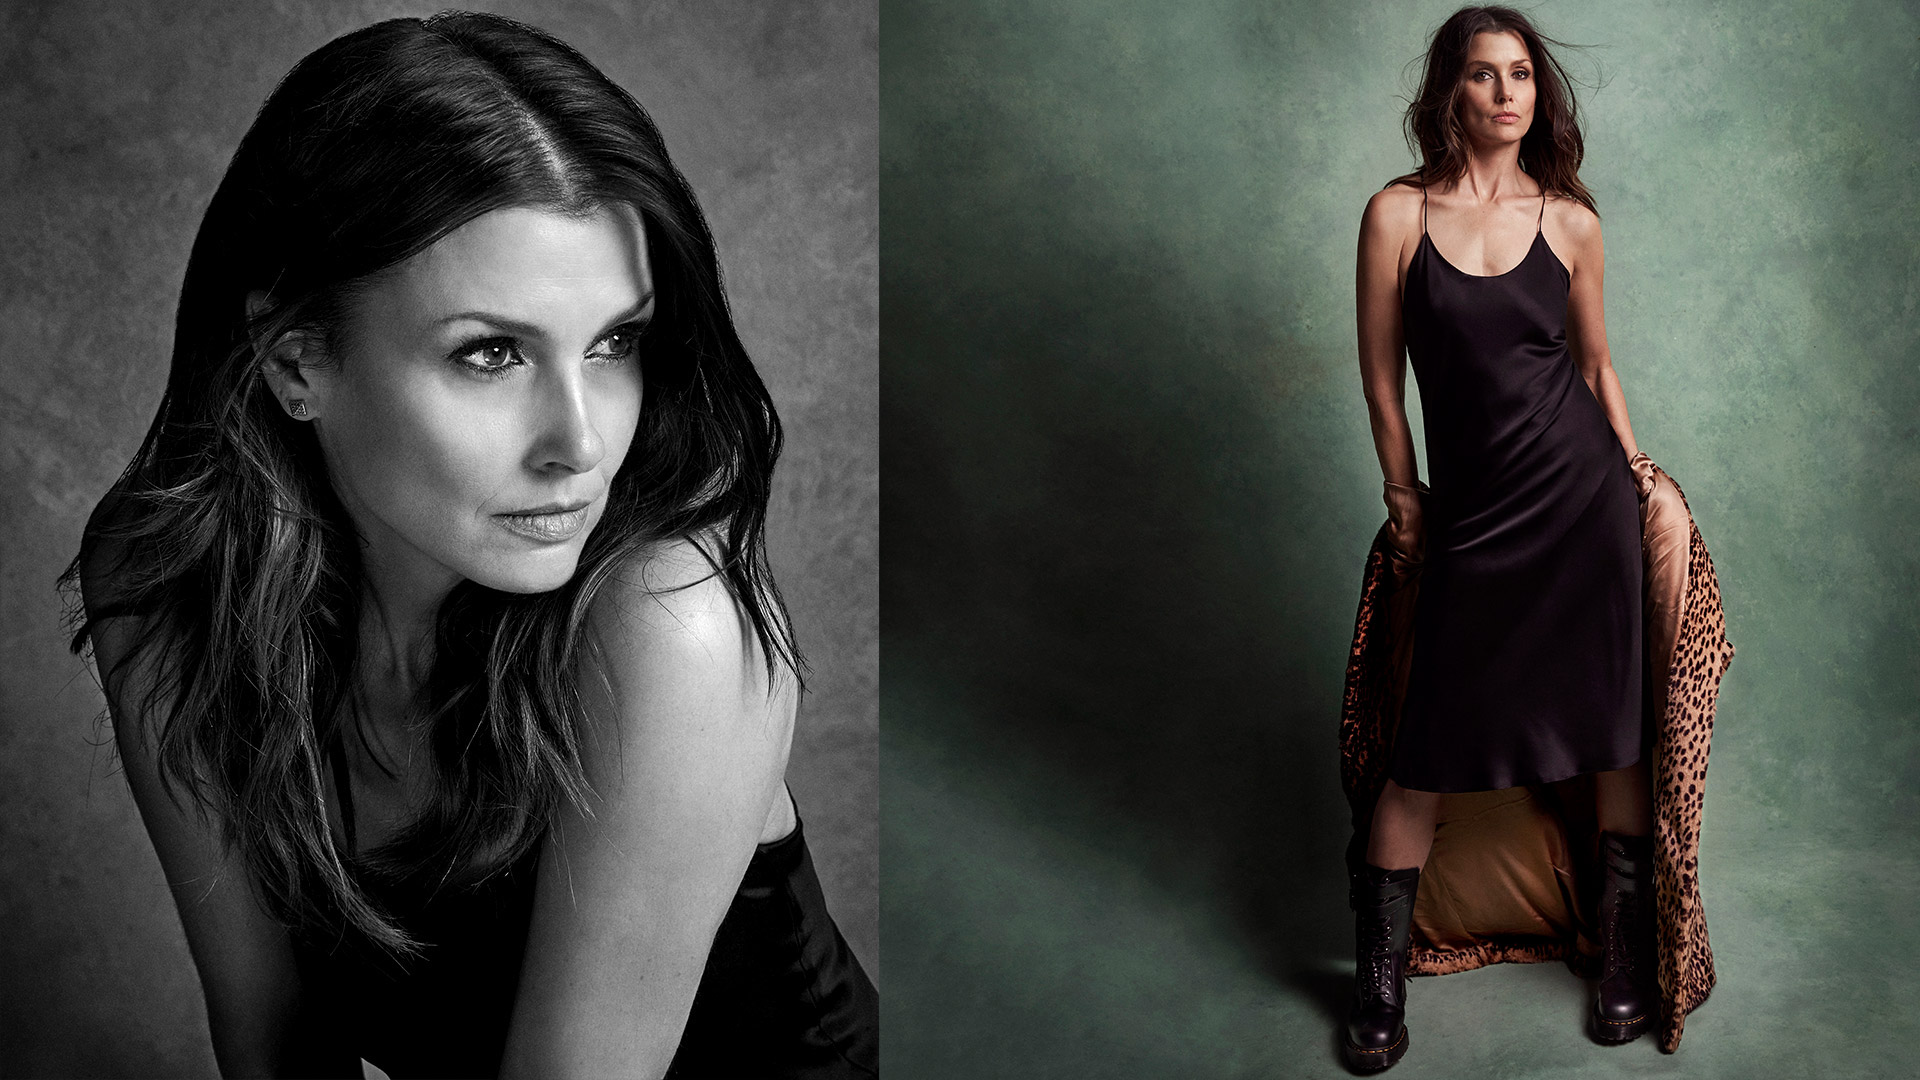 Bridget Moynahan trusts her acting instincts and digs deep